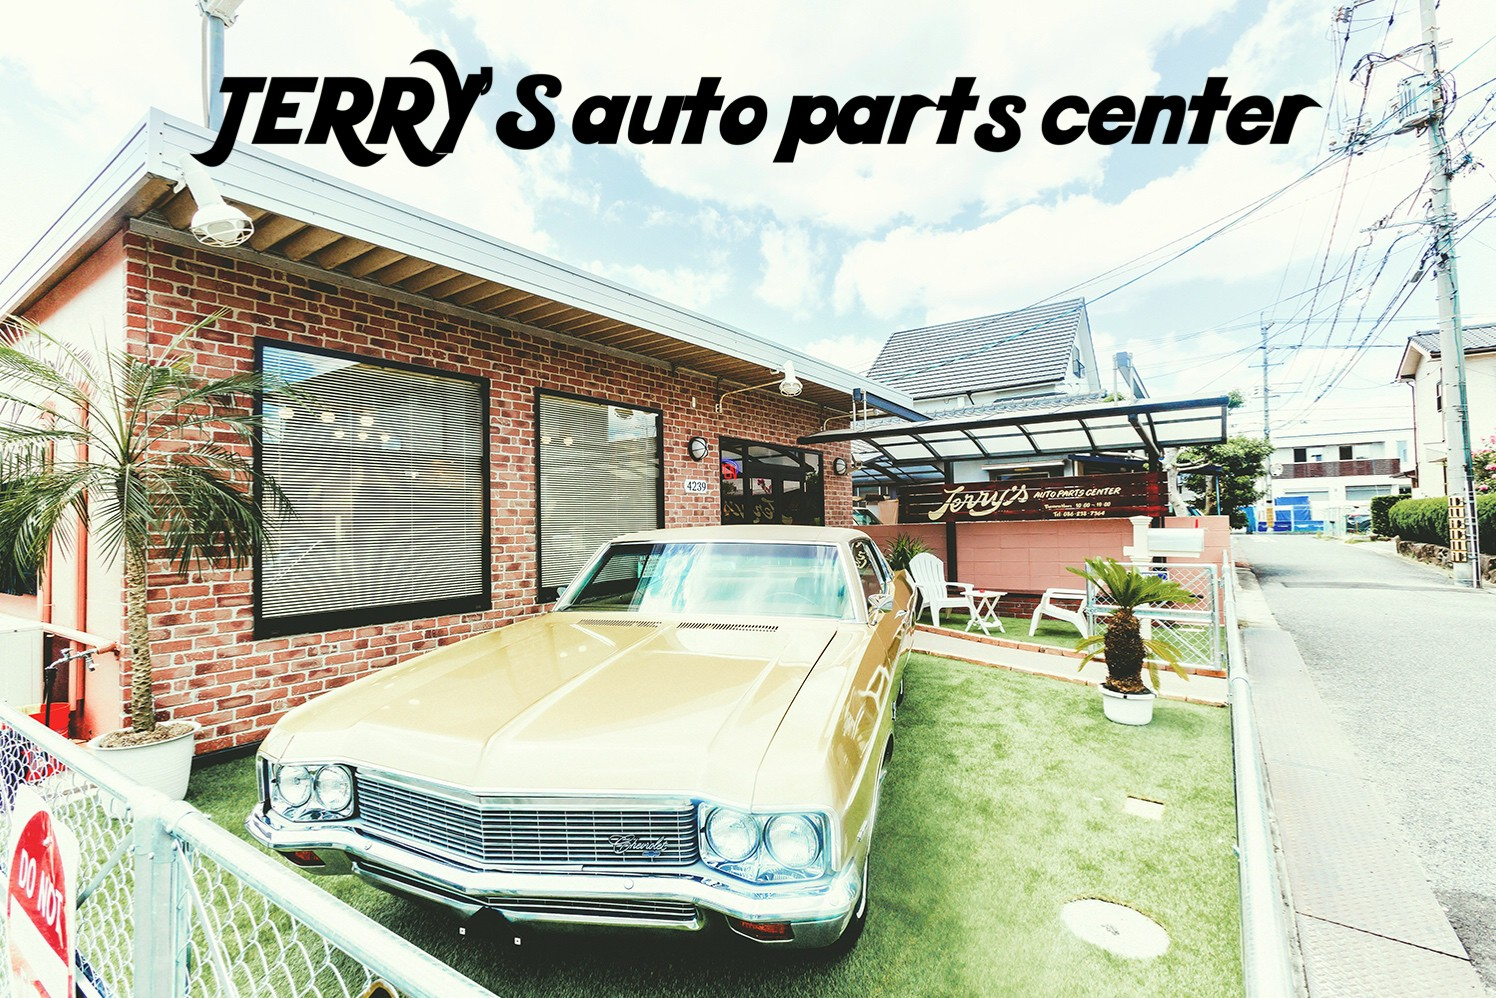 JERRY'S auto parts center